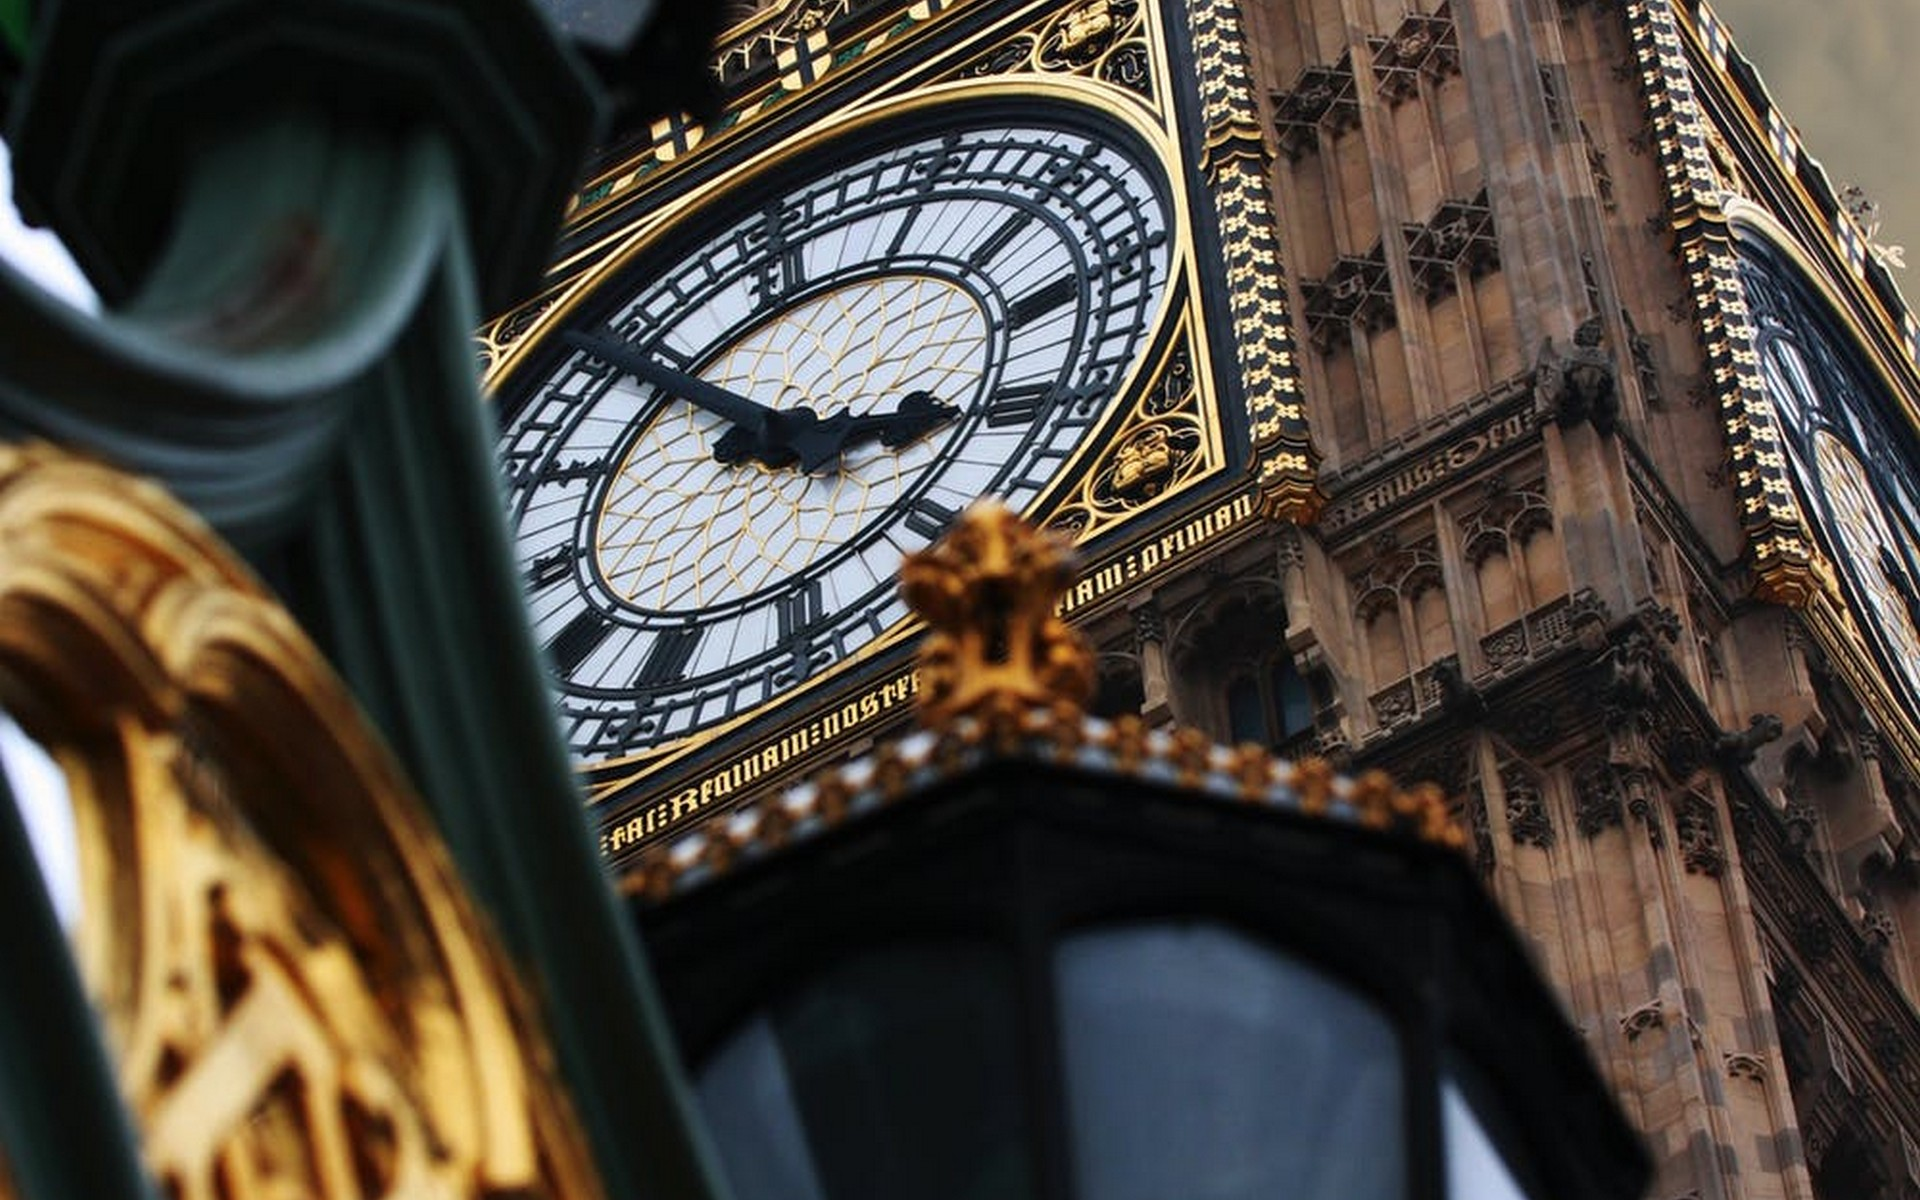 Big Ben Westminster marks time passing by